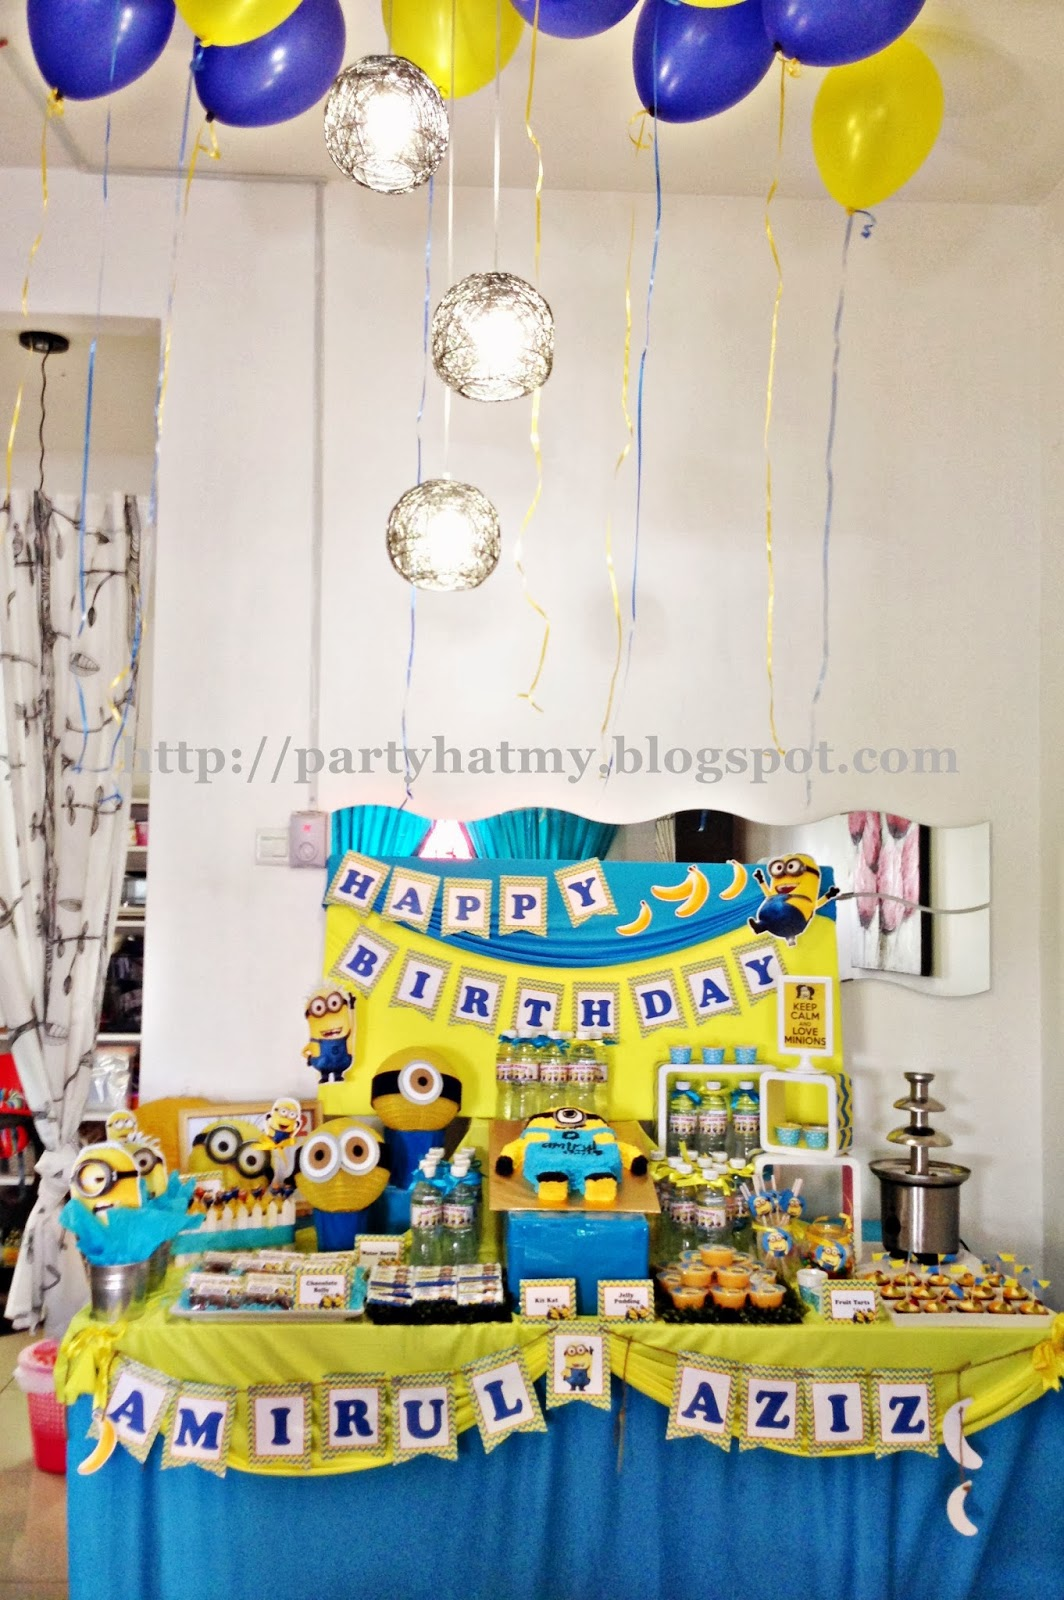 It was a rush order for aina to organise a minions theme birthday